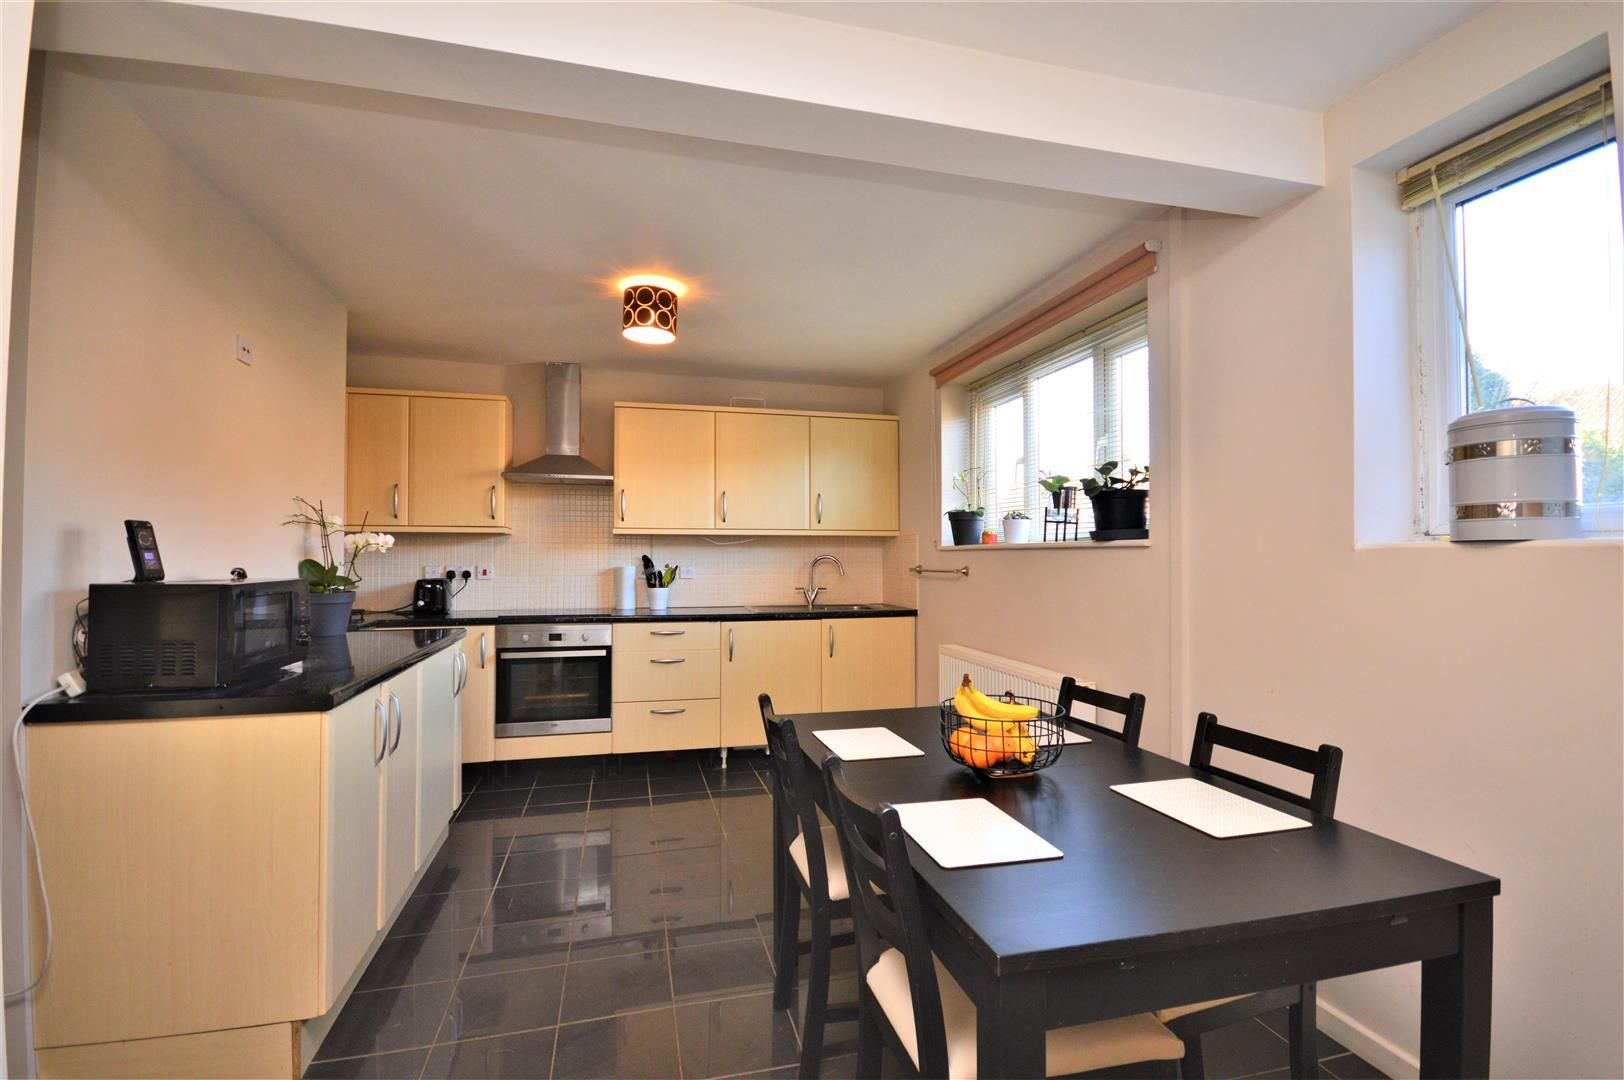 3 bed end-of-terrace for sale in Hereford 5